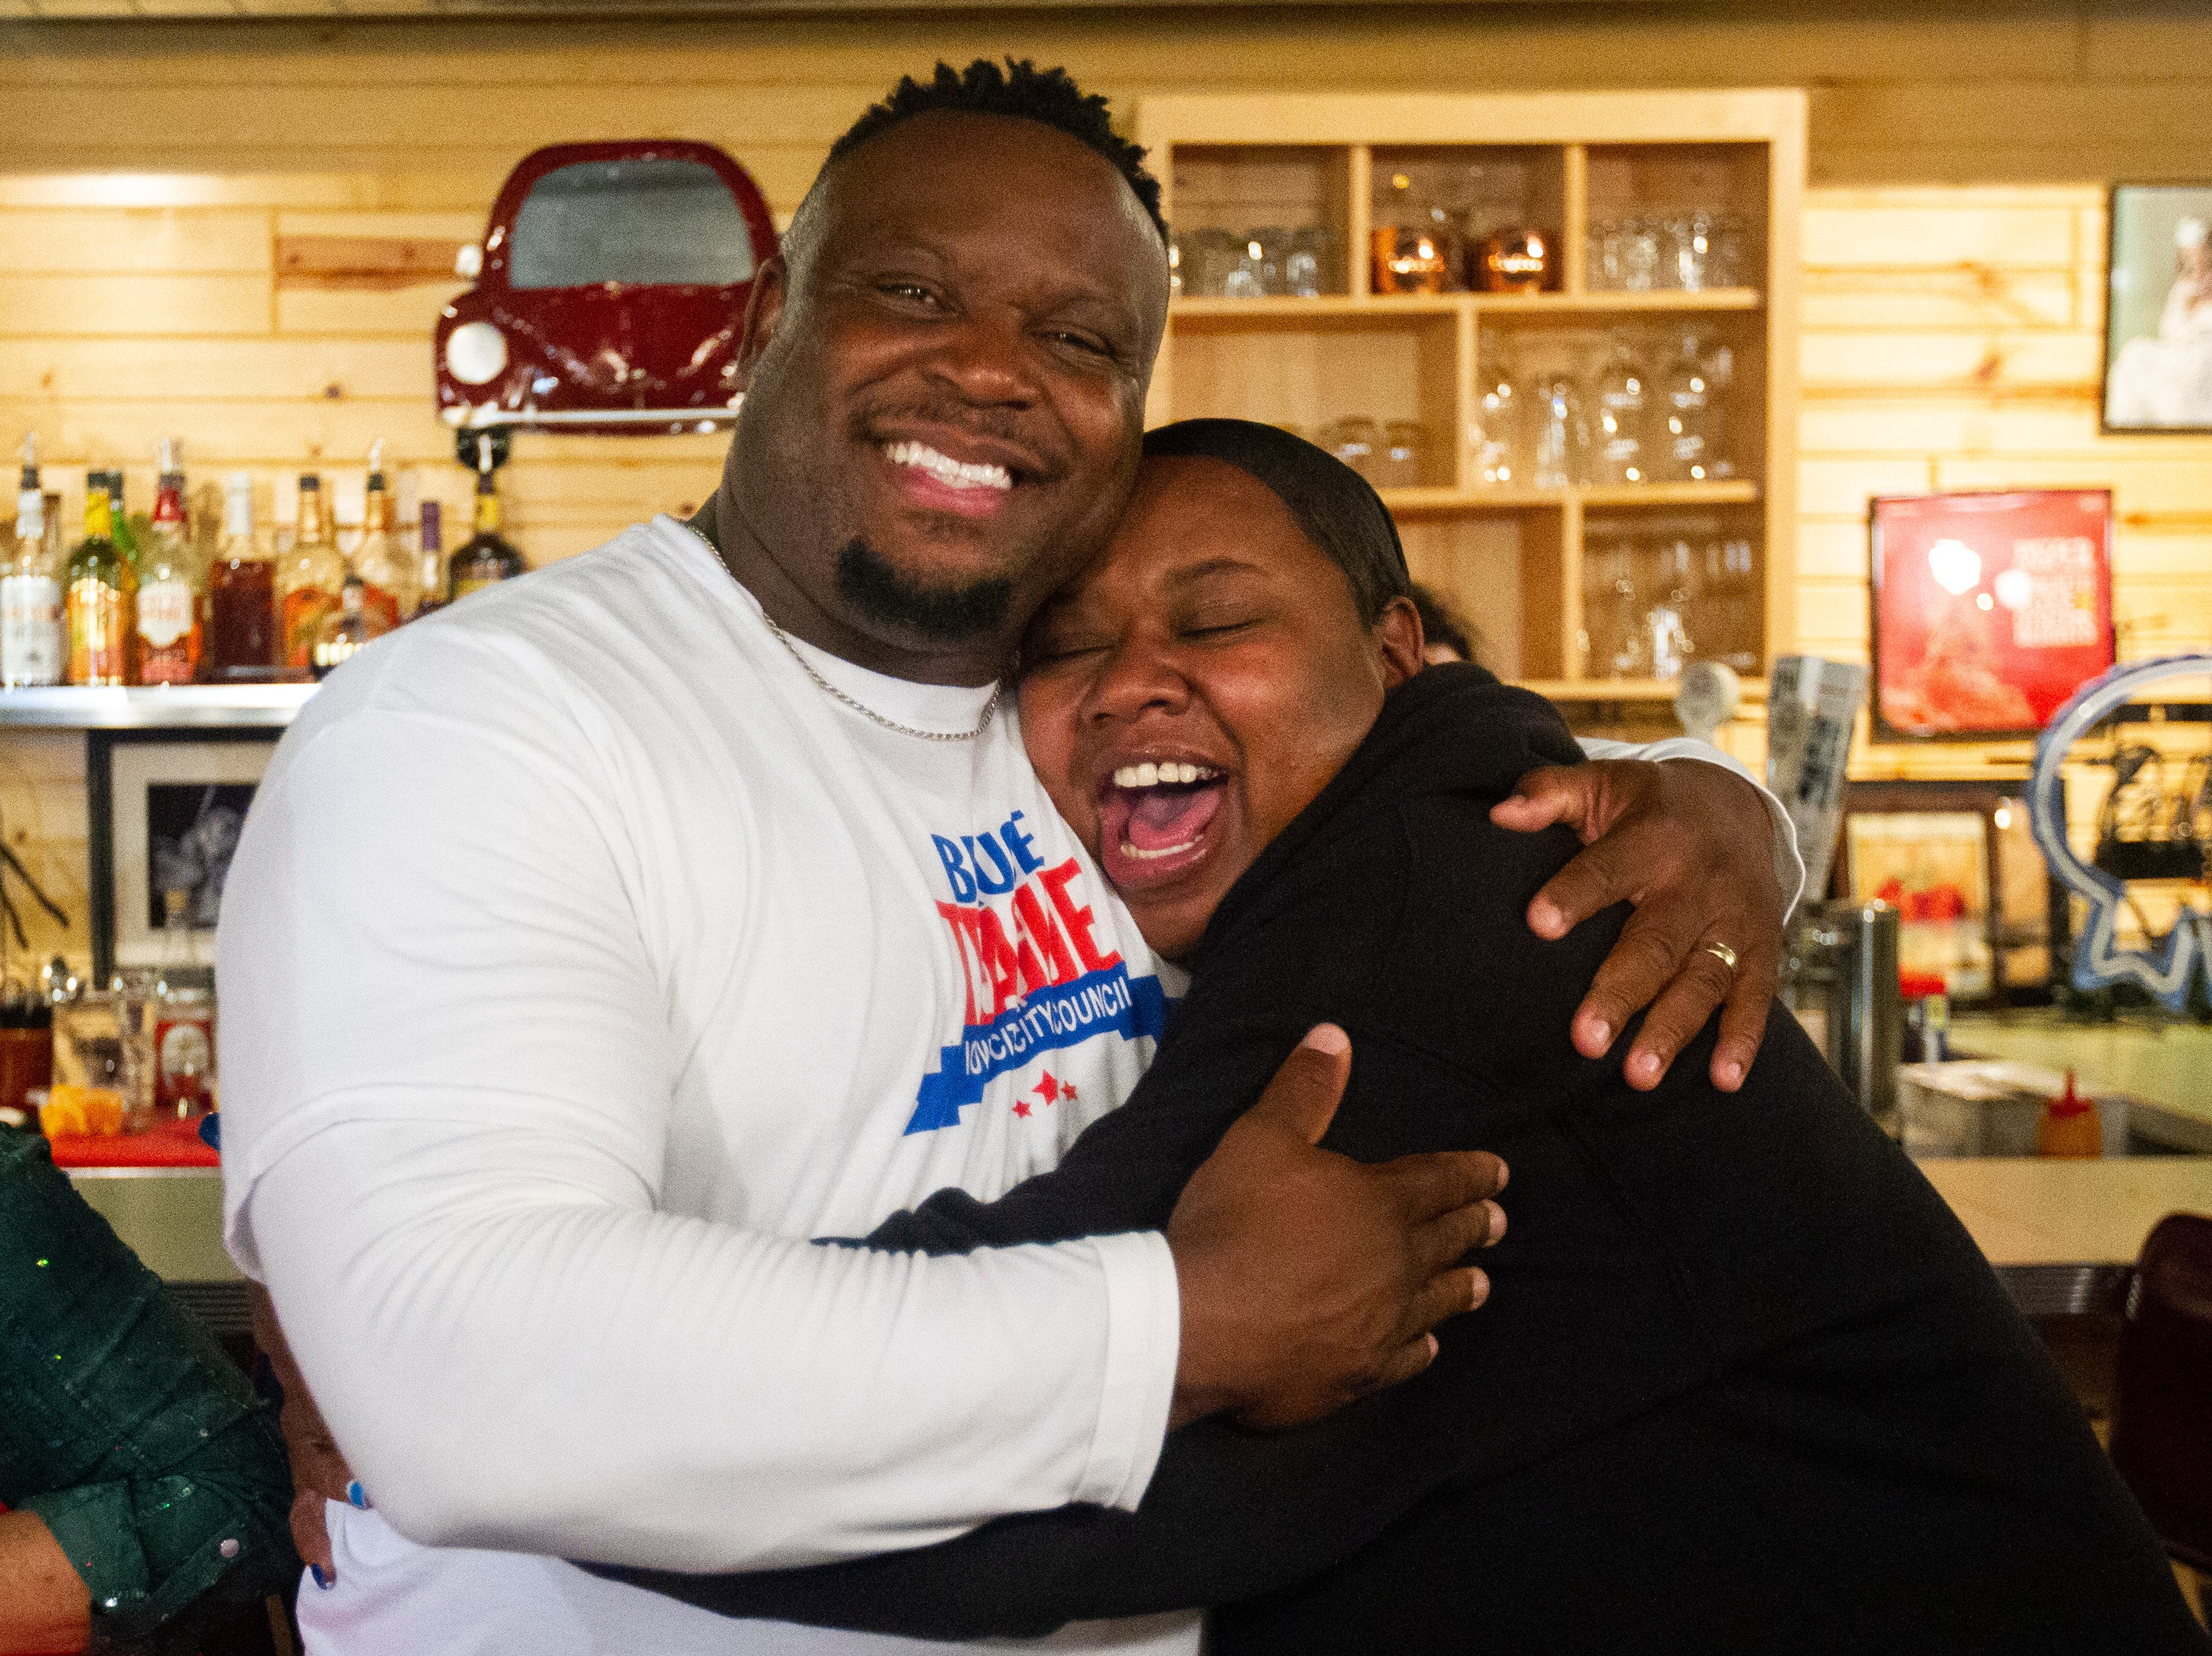 Bruce Teague embraces Royceann Porter on Tuesday, Oct. 2, 2018, at Billy's High Hat Diner on Iowa Avenue in Iowa City.